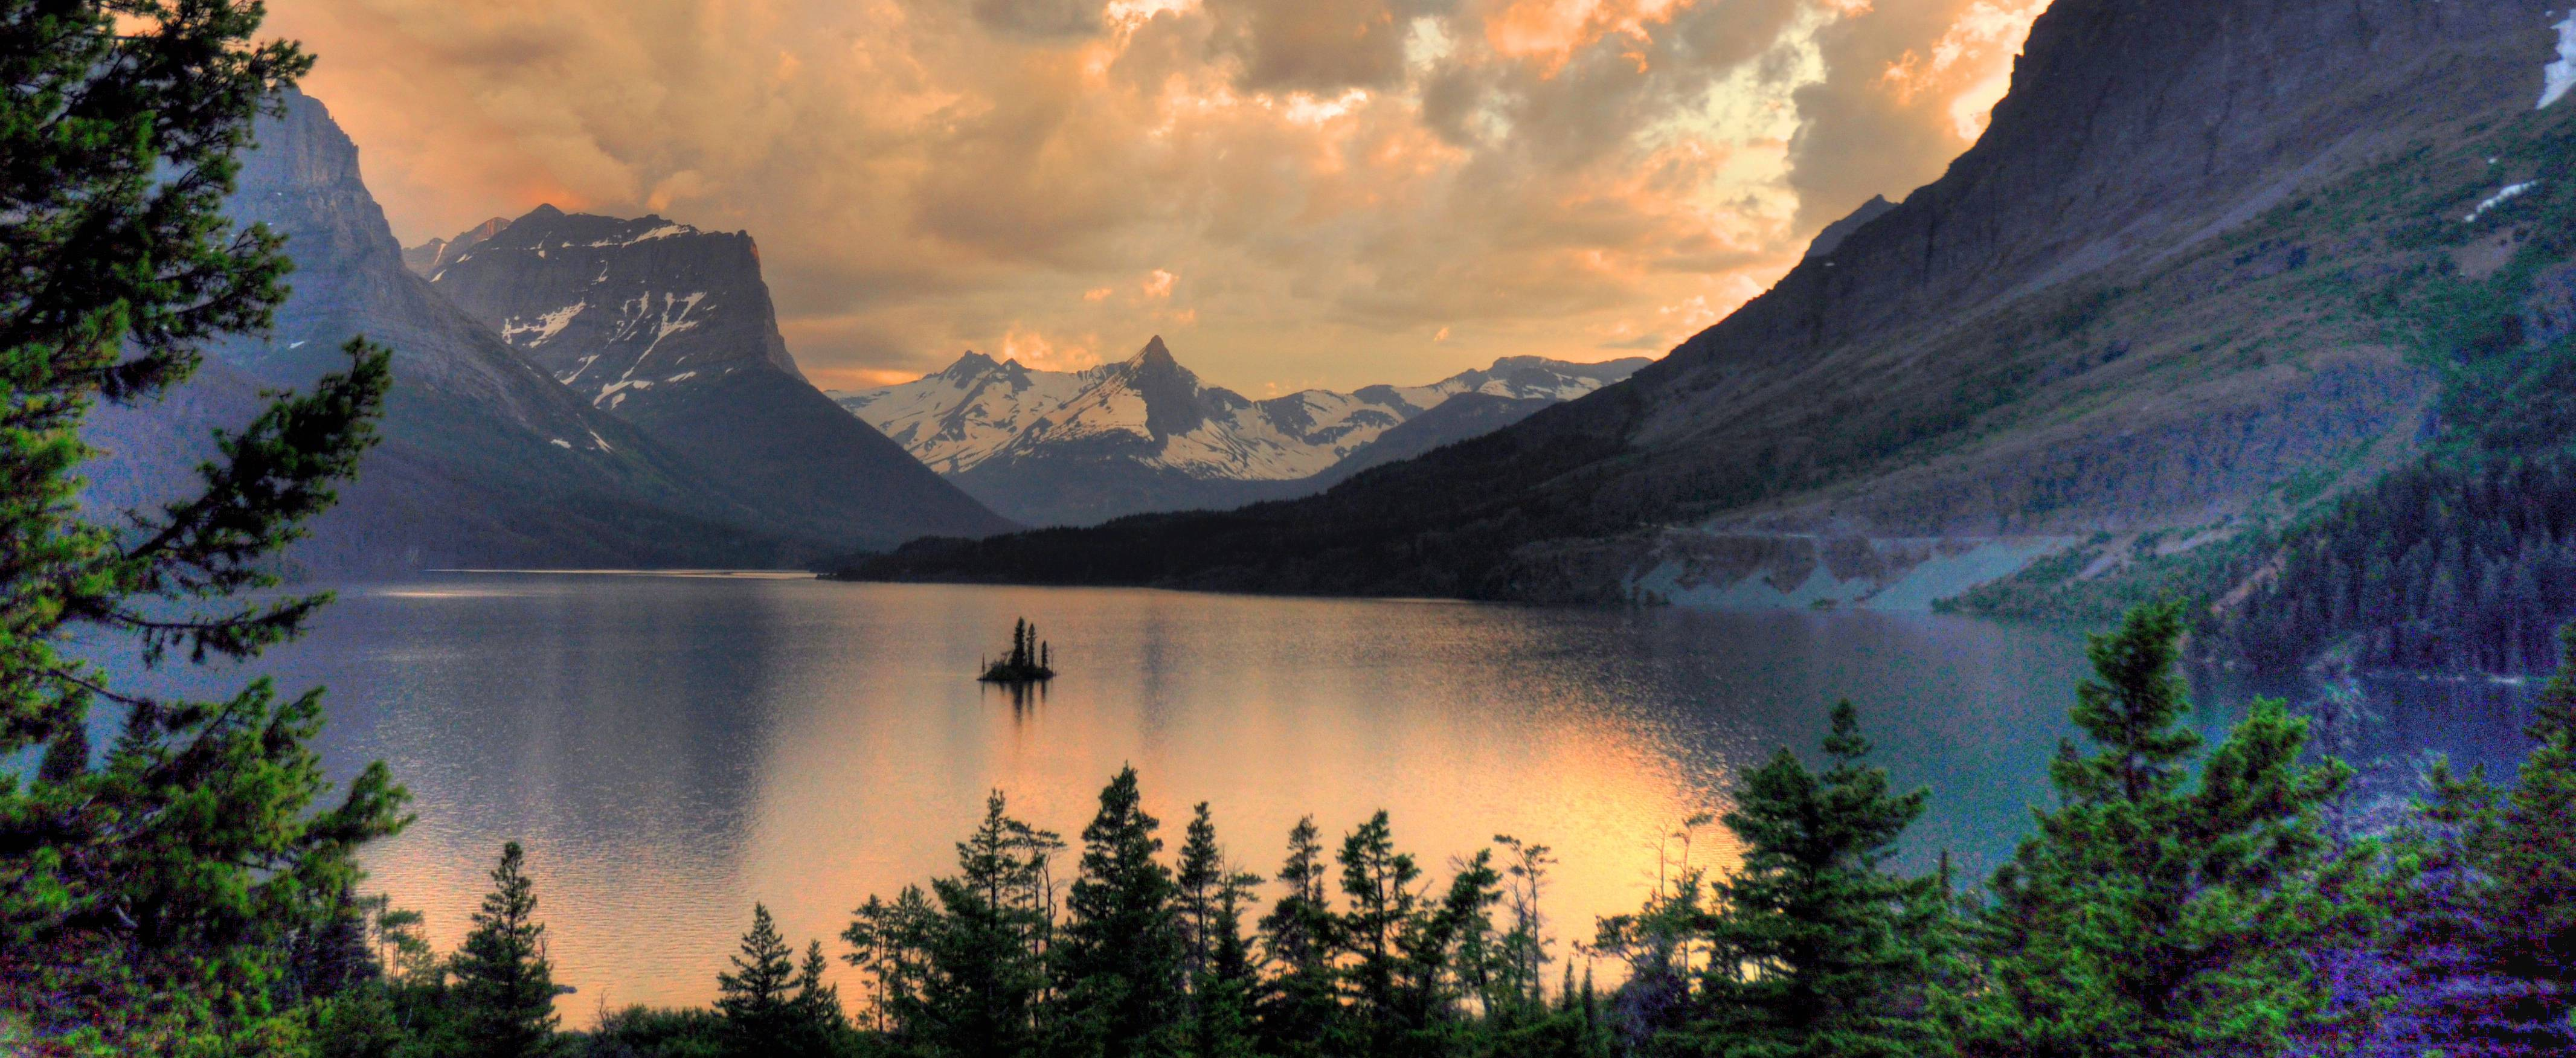 During a summer vacation to Glacier National Park, my son and I watched this beautiful sunset from the Wild Goose Island Overlook on our first evening in the park.